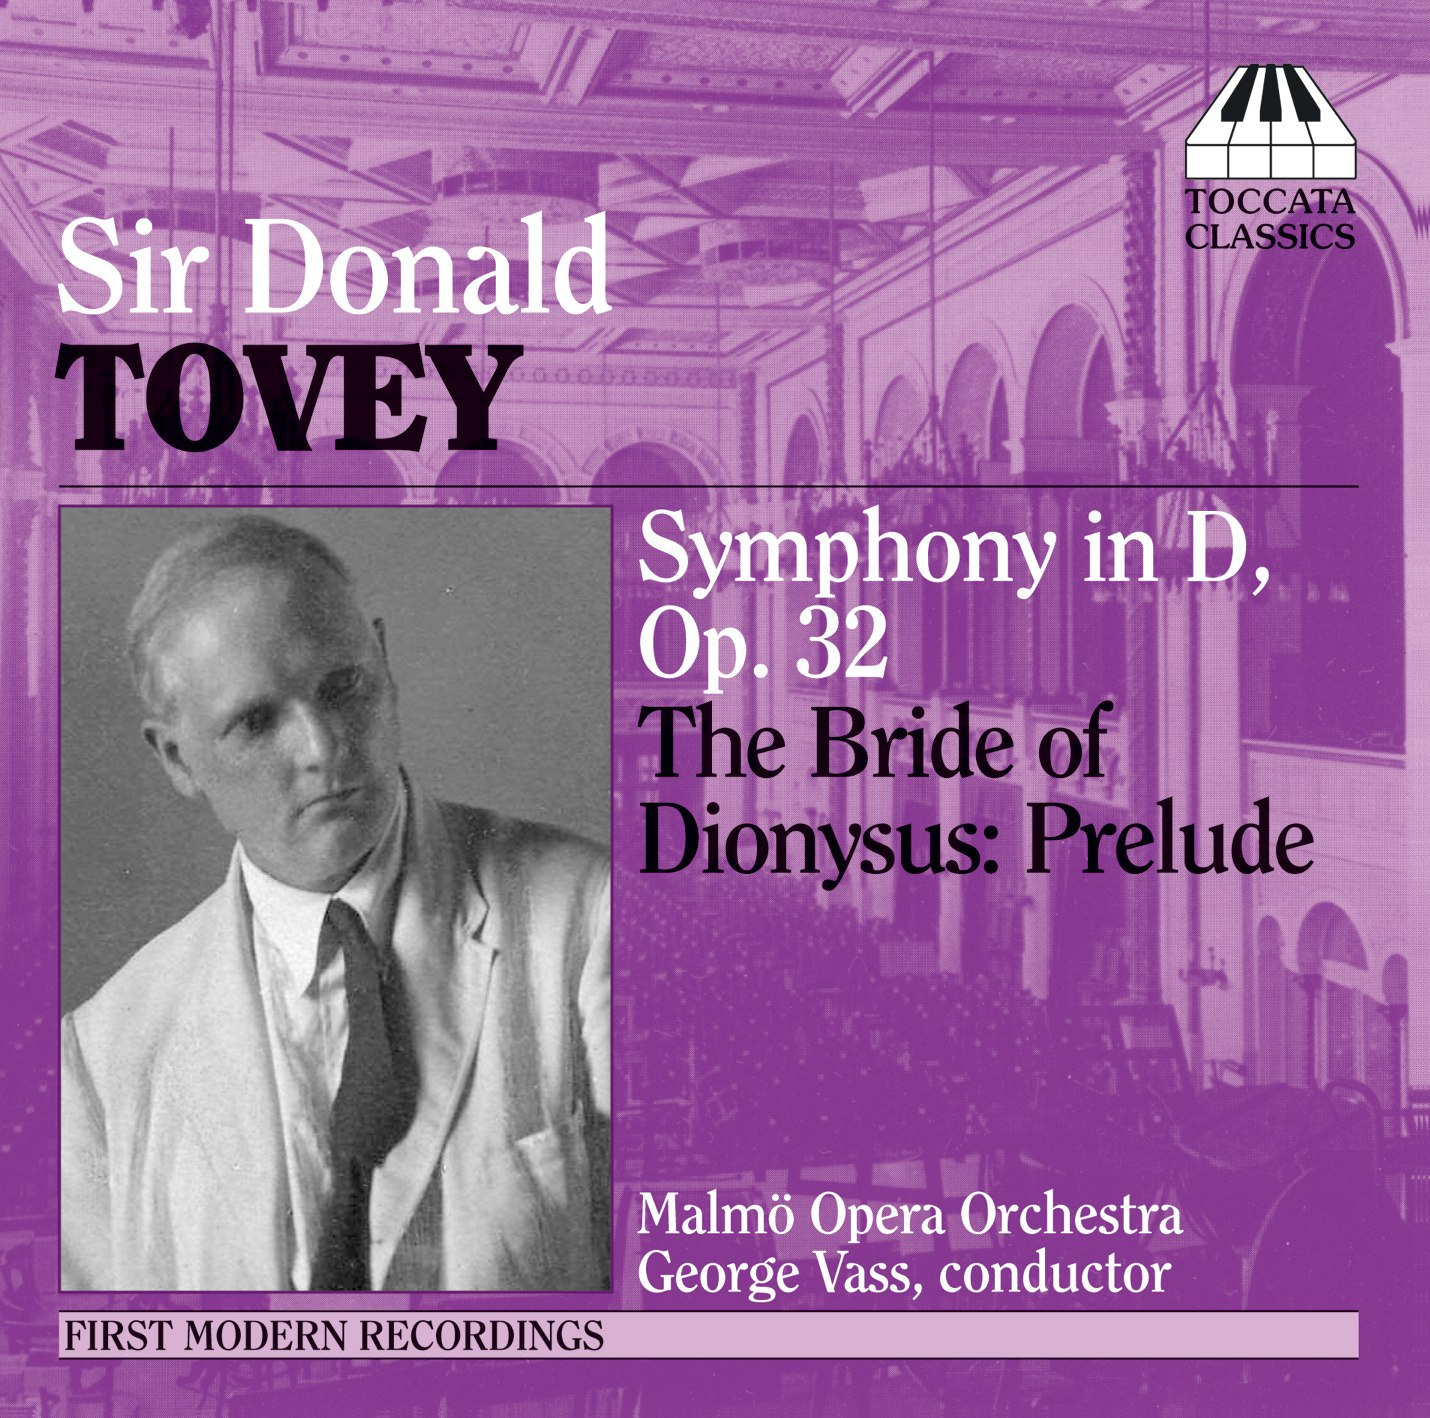 Sir Donald Tovey: Symphony in D